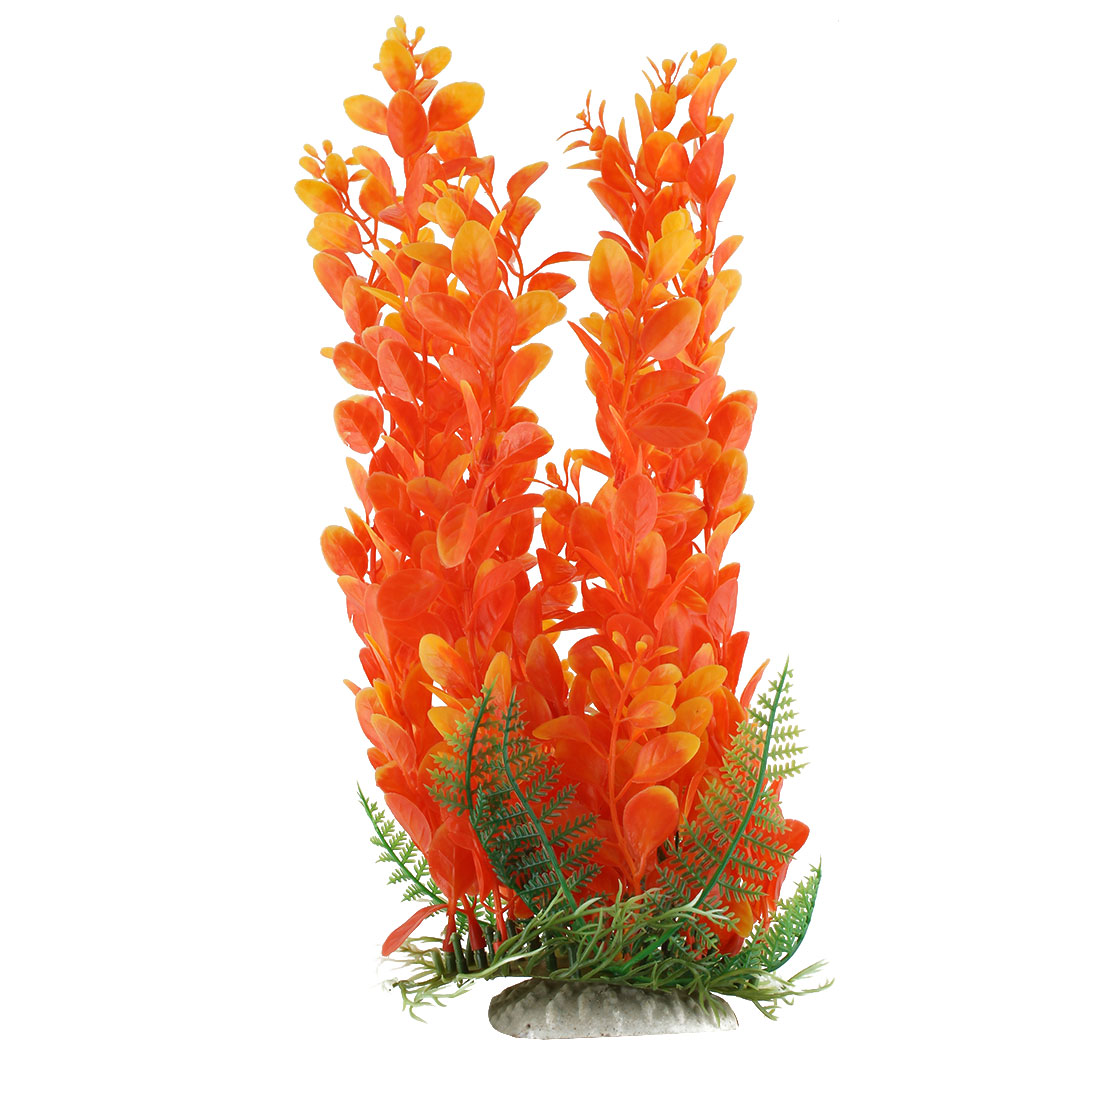 Aquarium Fish Tank Ceramic Base Plastic Artificial Underwater Plant Decor Orange